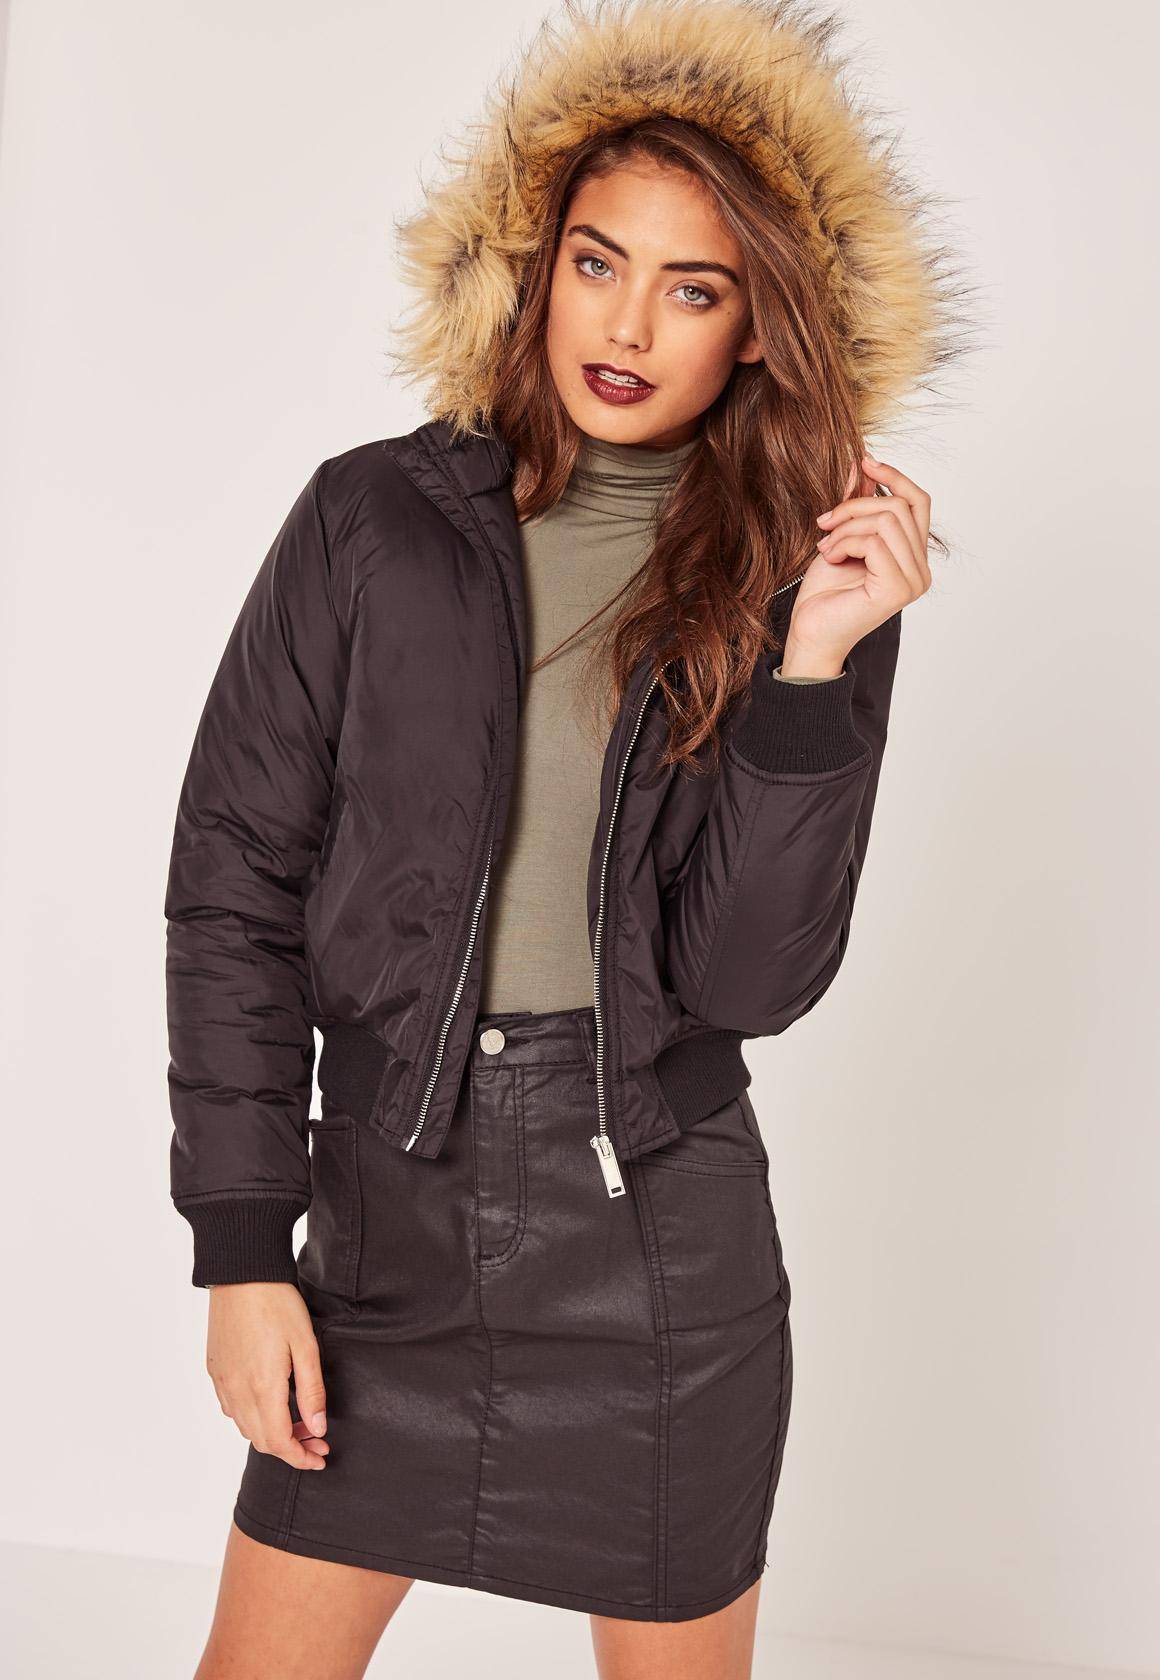 Faux Fur Coats | Black, Grey Faux Fur Jacket - Missguided